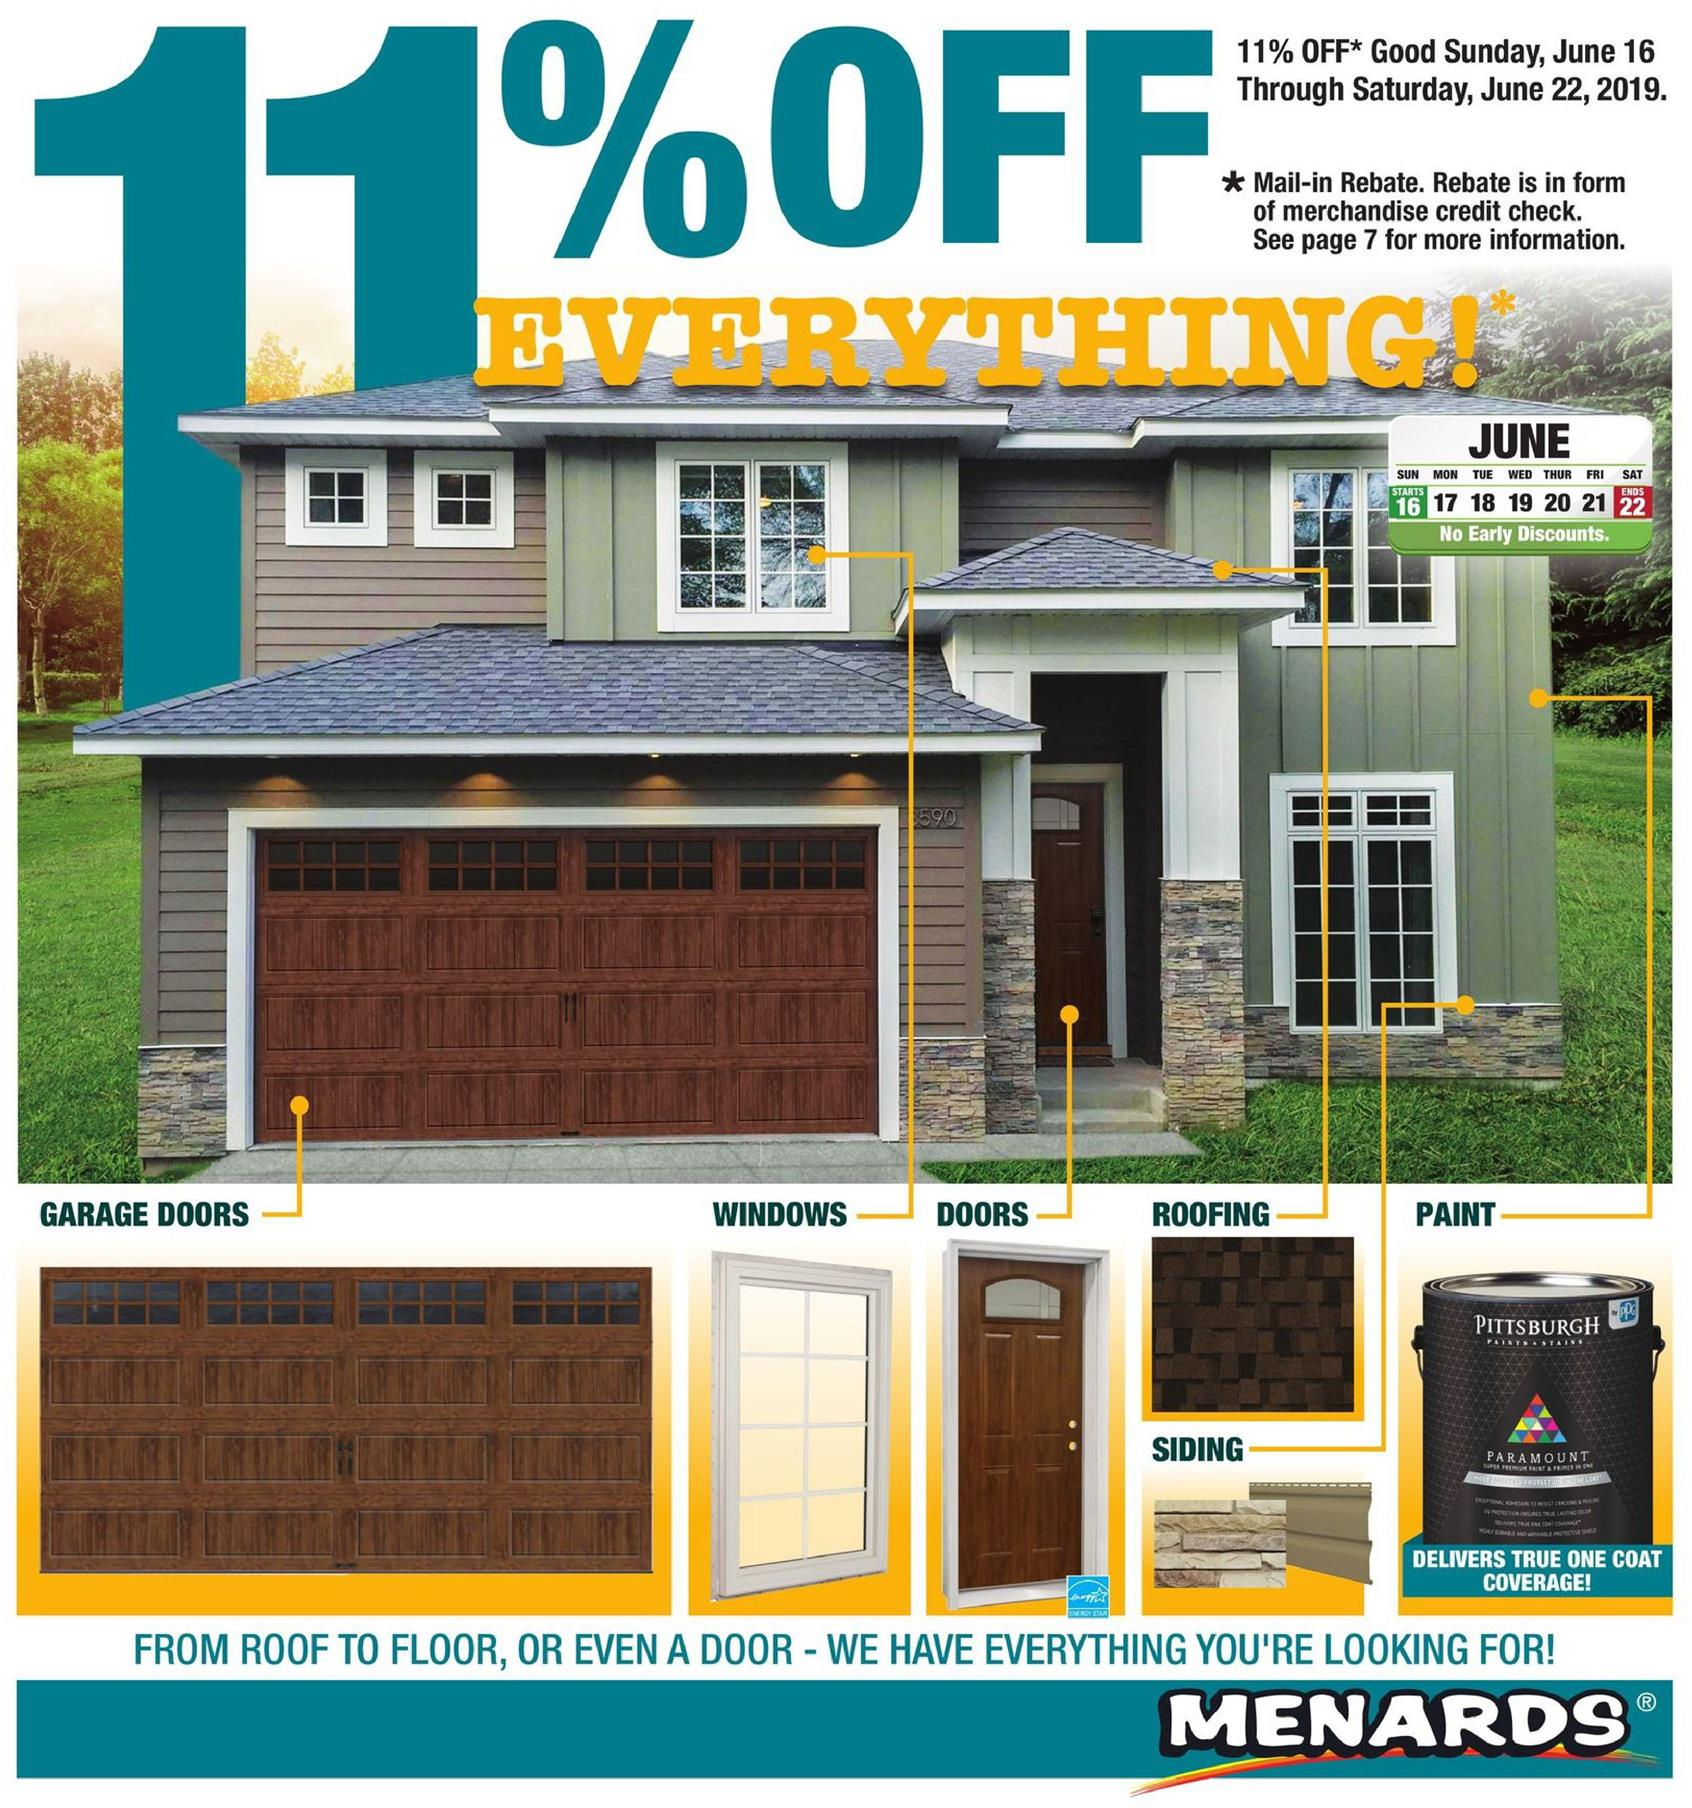 Menards Weekly Ad Jun 16 - 22, 2019